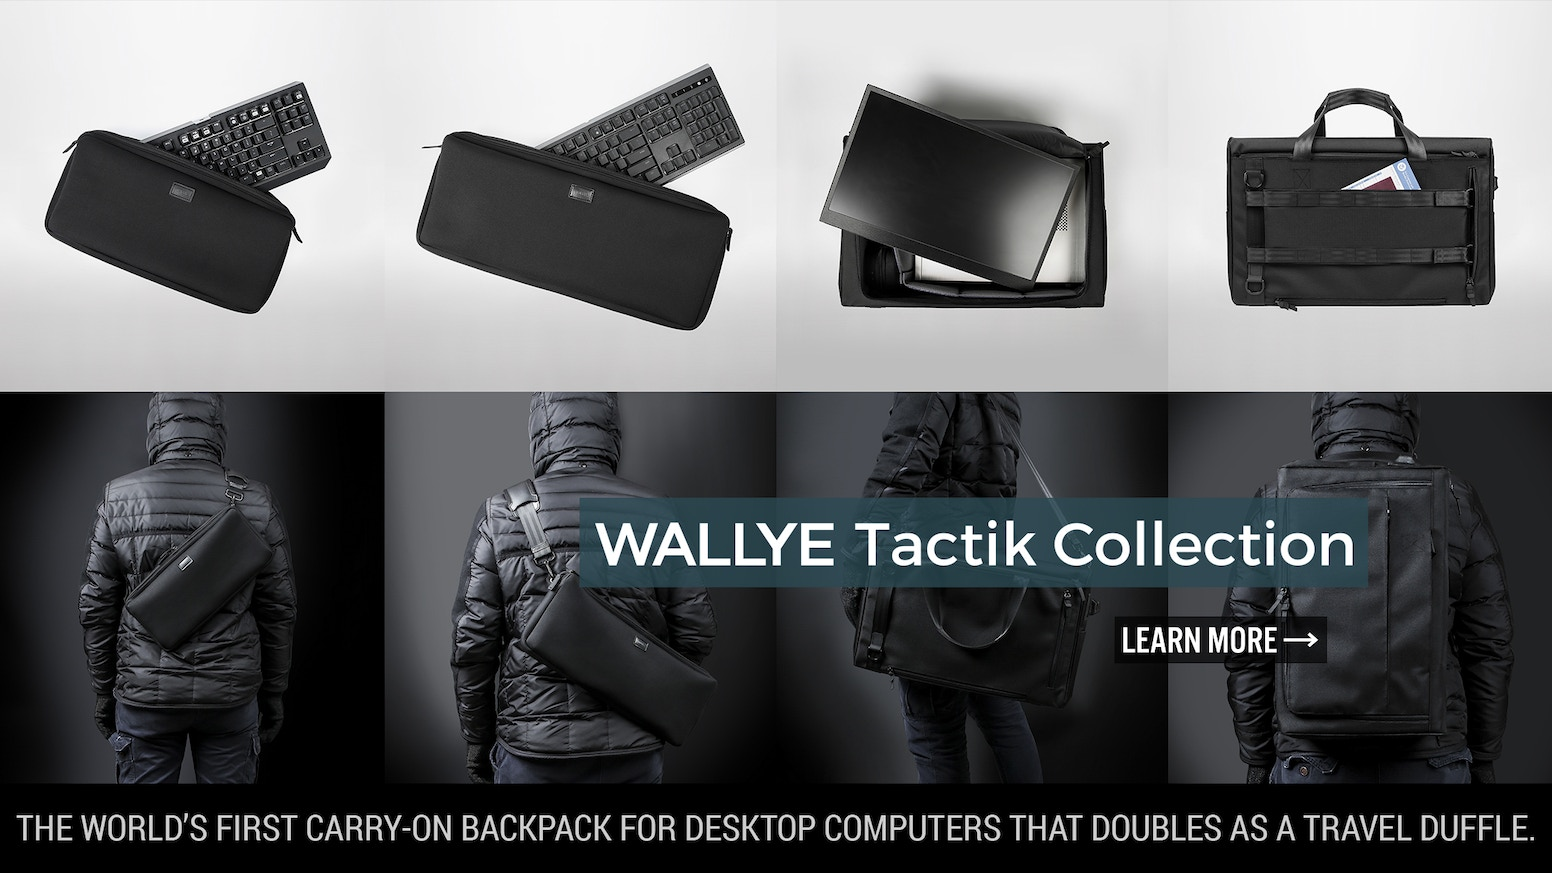 The world's first carry-on backpack for desktop computers that doubles as a travel duffle.